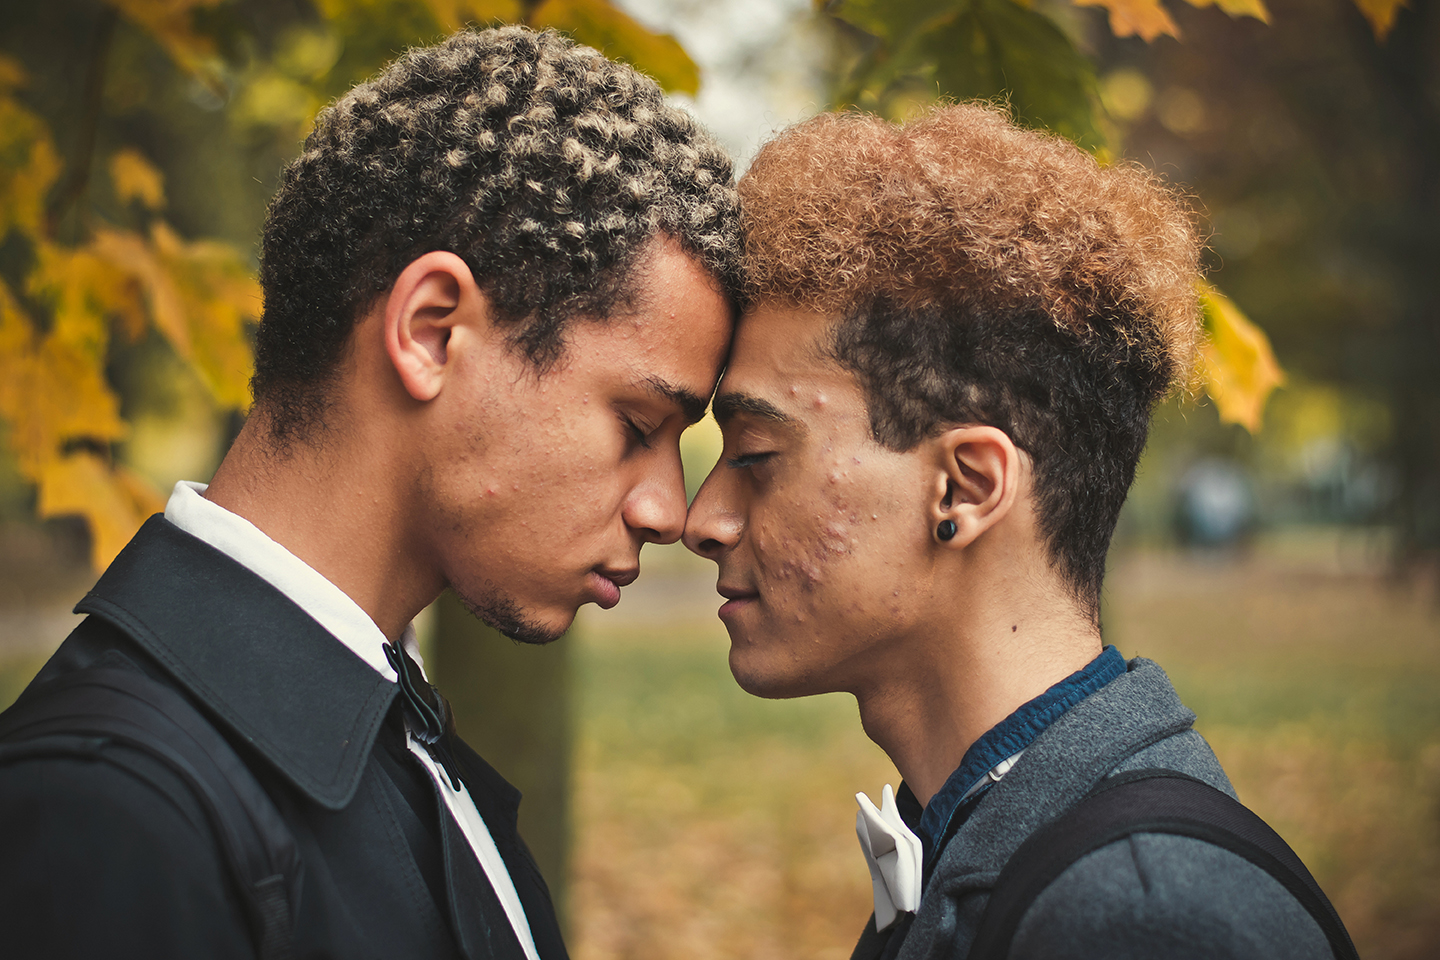 Handsome young gay couple standing head to head in park.